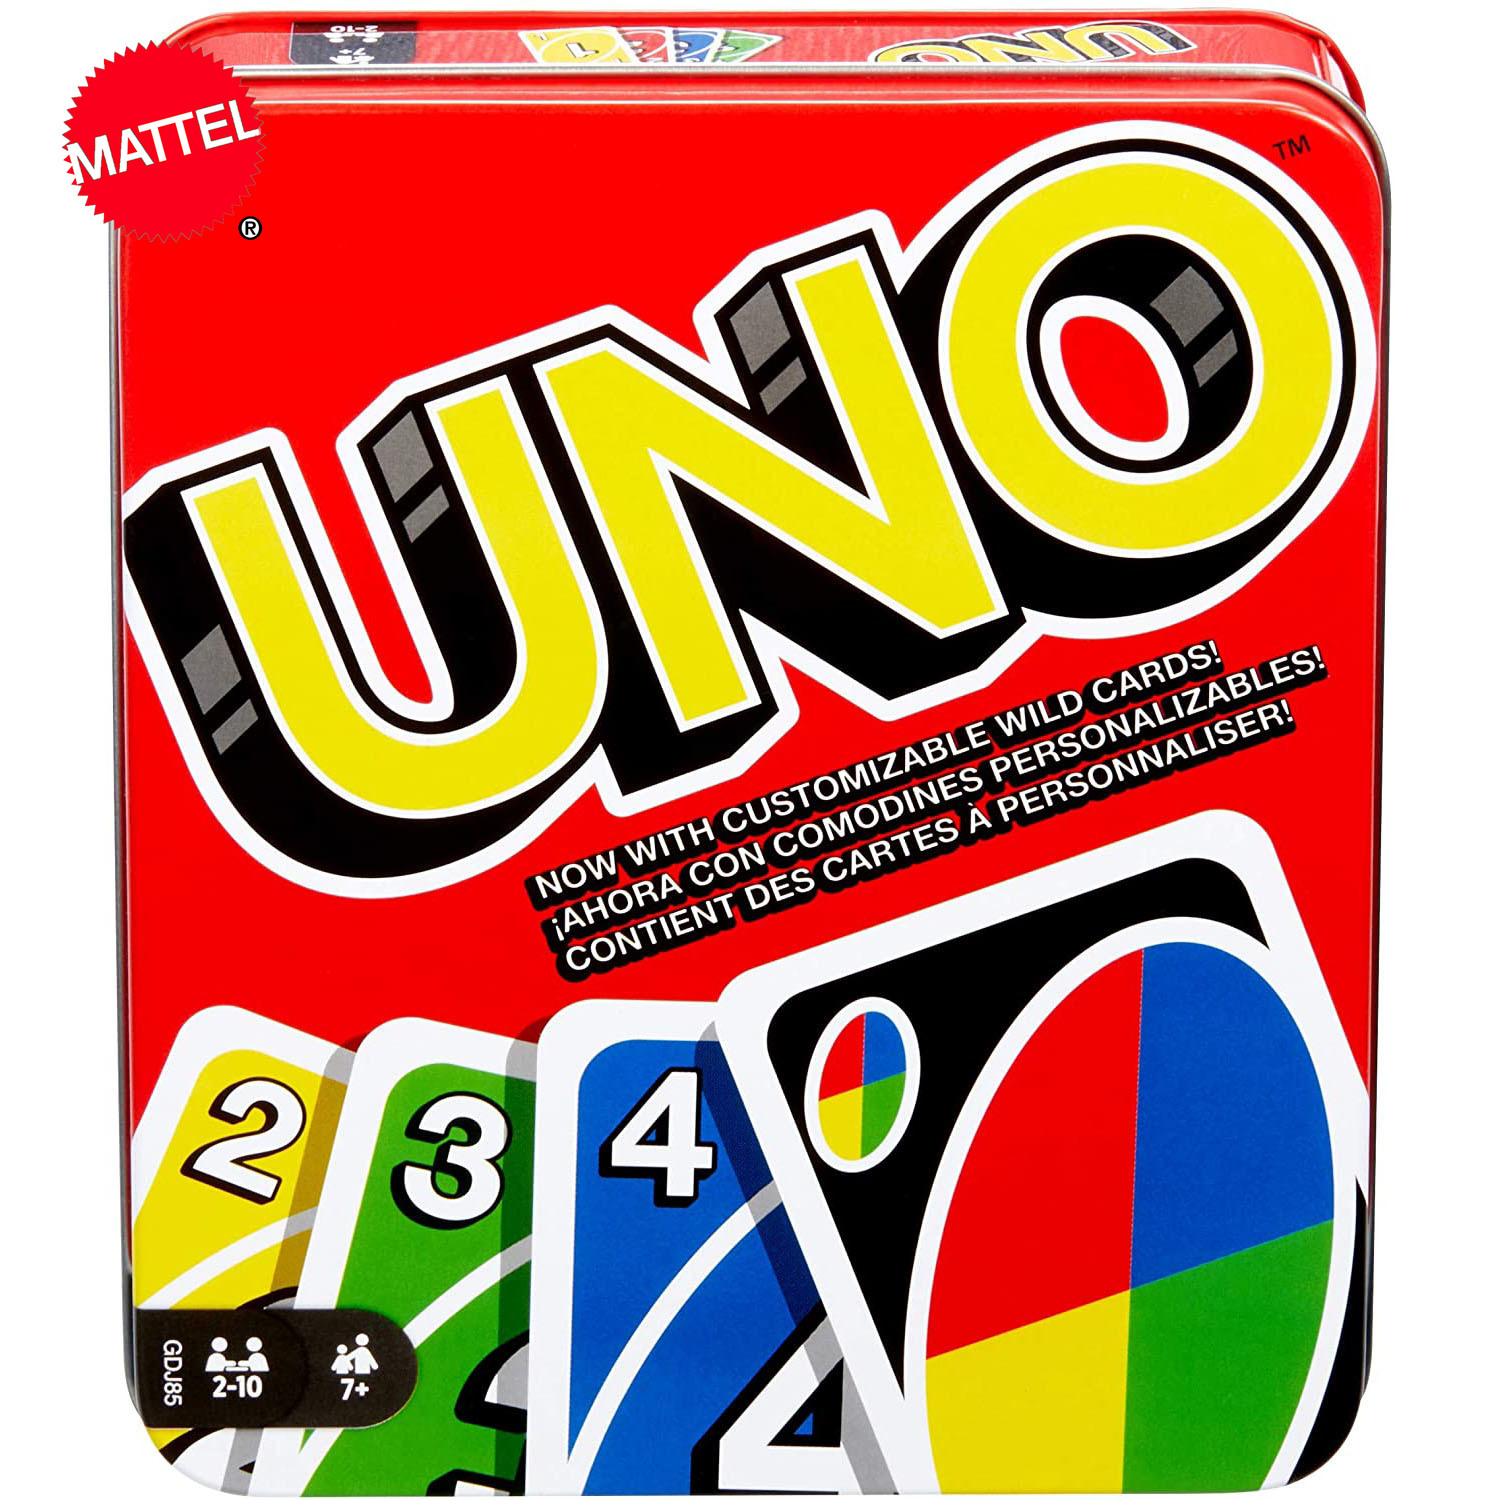 Topsale Puzzle Games Mattel Genuine UNO: Classic Family Funny Entertainment Board Game Fun Poker Playing Cards Gift Box